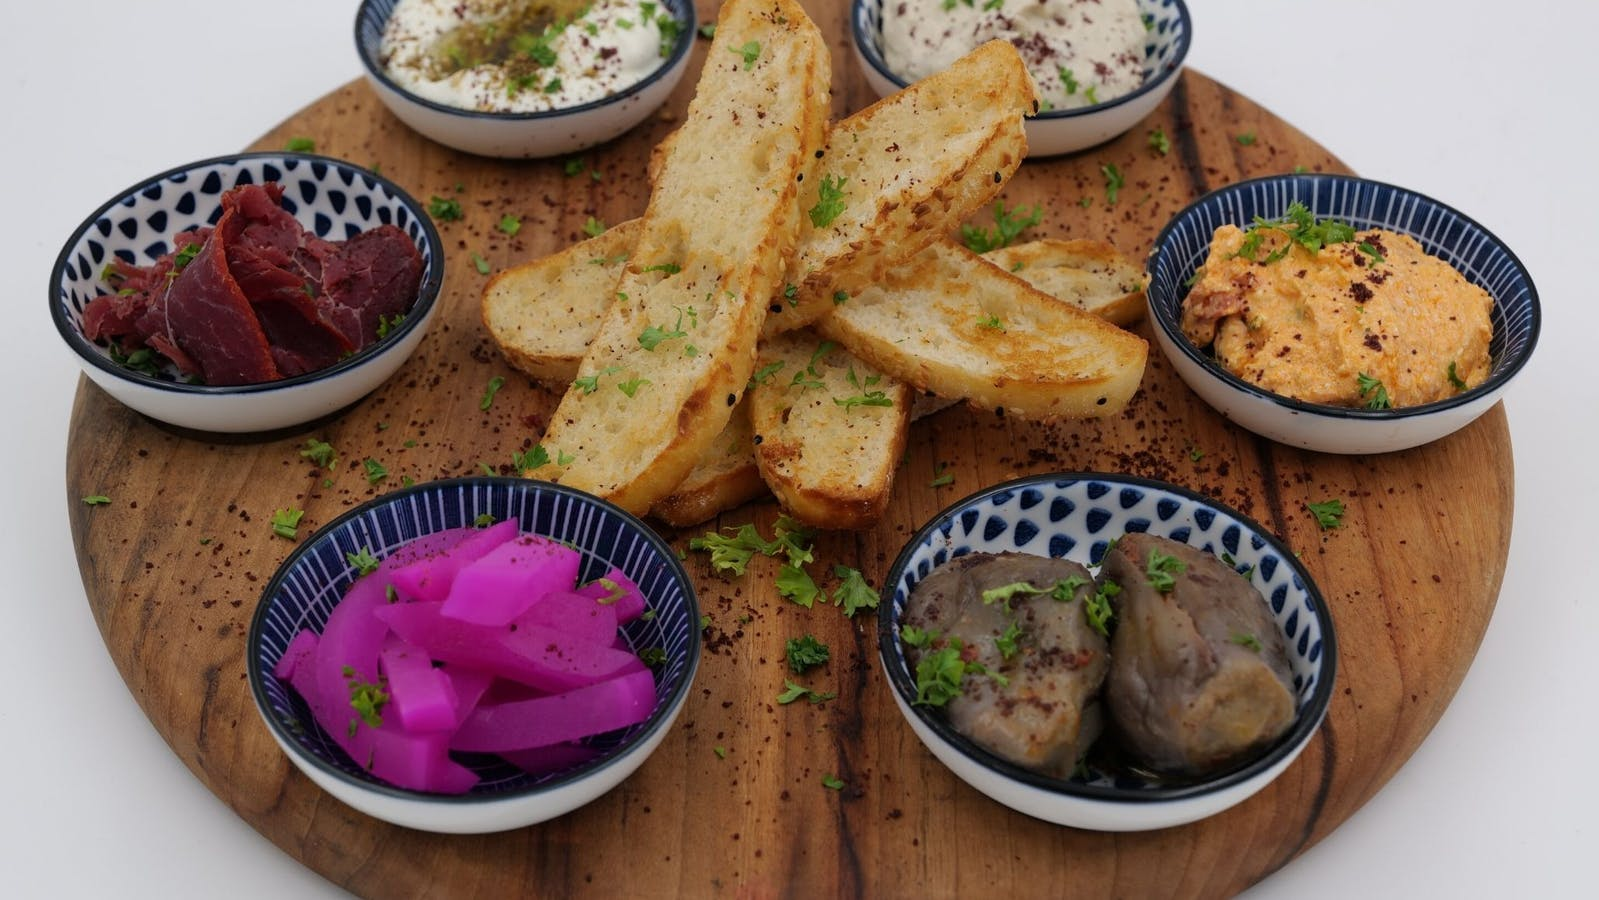 Turkish bread, hummus, sun-dried tomato, dips, eggplant, basturma, baba ghanoush, turnip